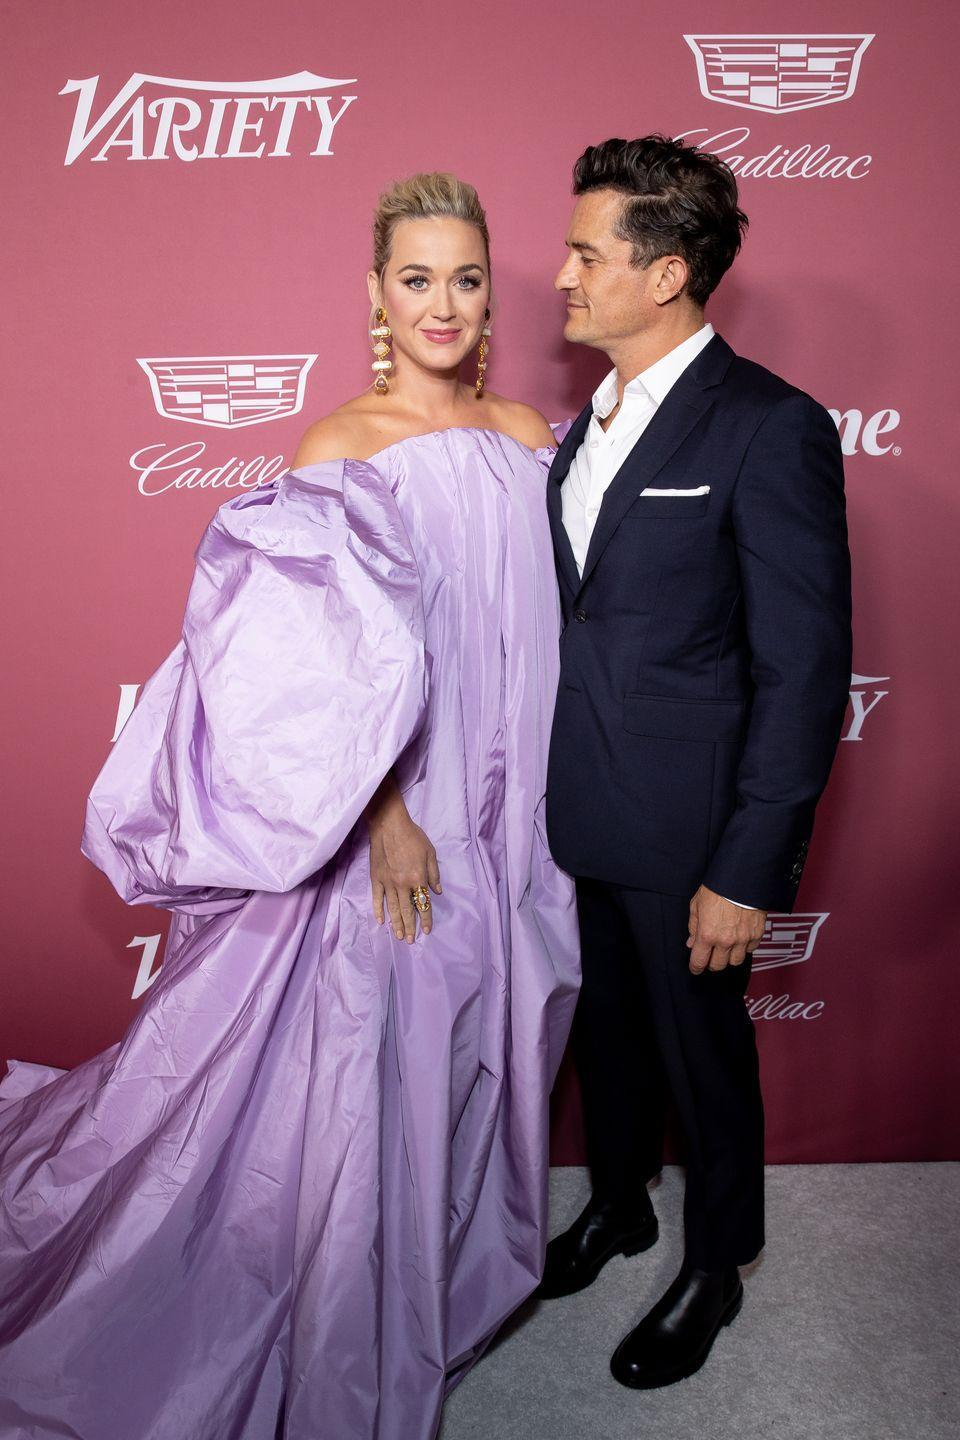 <p>The 'I Kissed A Girl' singer looked glorious in a billowing lilac-hued strapless dress for the event. The mother-of-one style her look with a pair of drop earrings and pulled her blonde hair back into a chic updo.<br></p><p>Accepting an award at the event, Perry said in her speech: 'Lest we forget, behind every great woman, there is a great man way to my beloved partner. And I'm sure whether I like it or not, Orlando, a man that is a friend and an ally to women all around the world. Thank you for handling the insanity of my life.'</p>